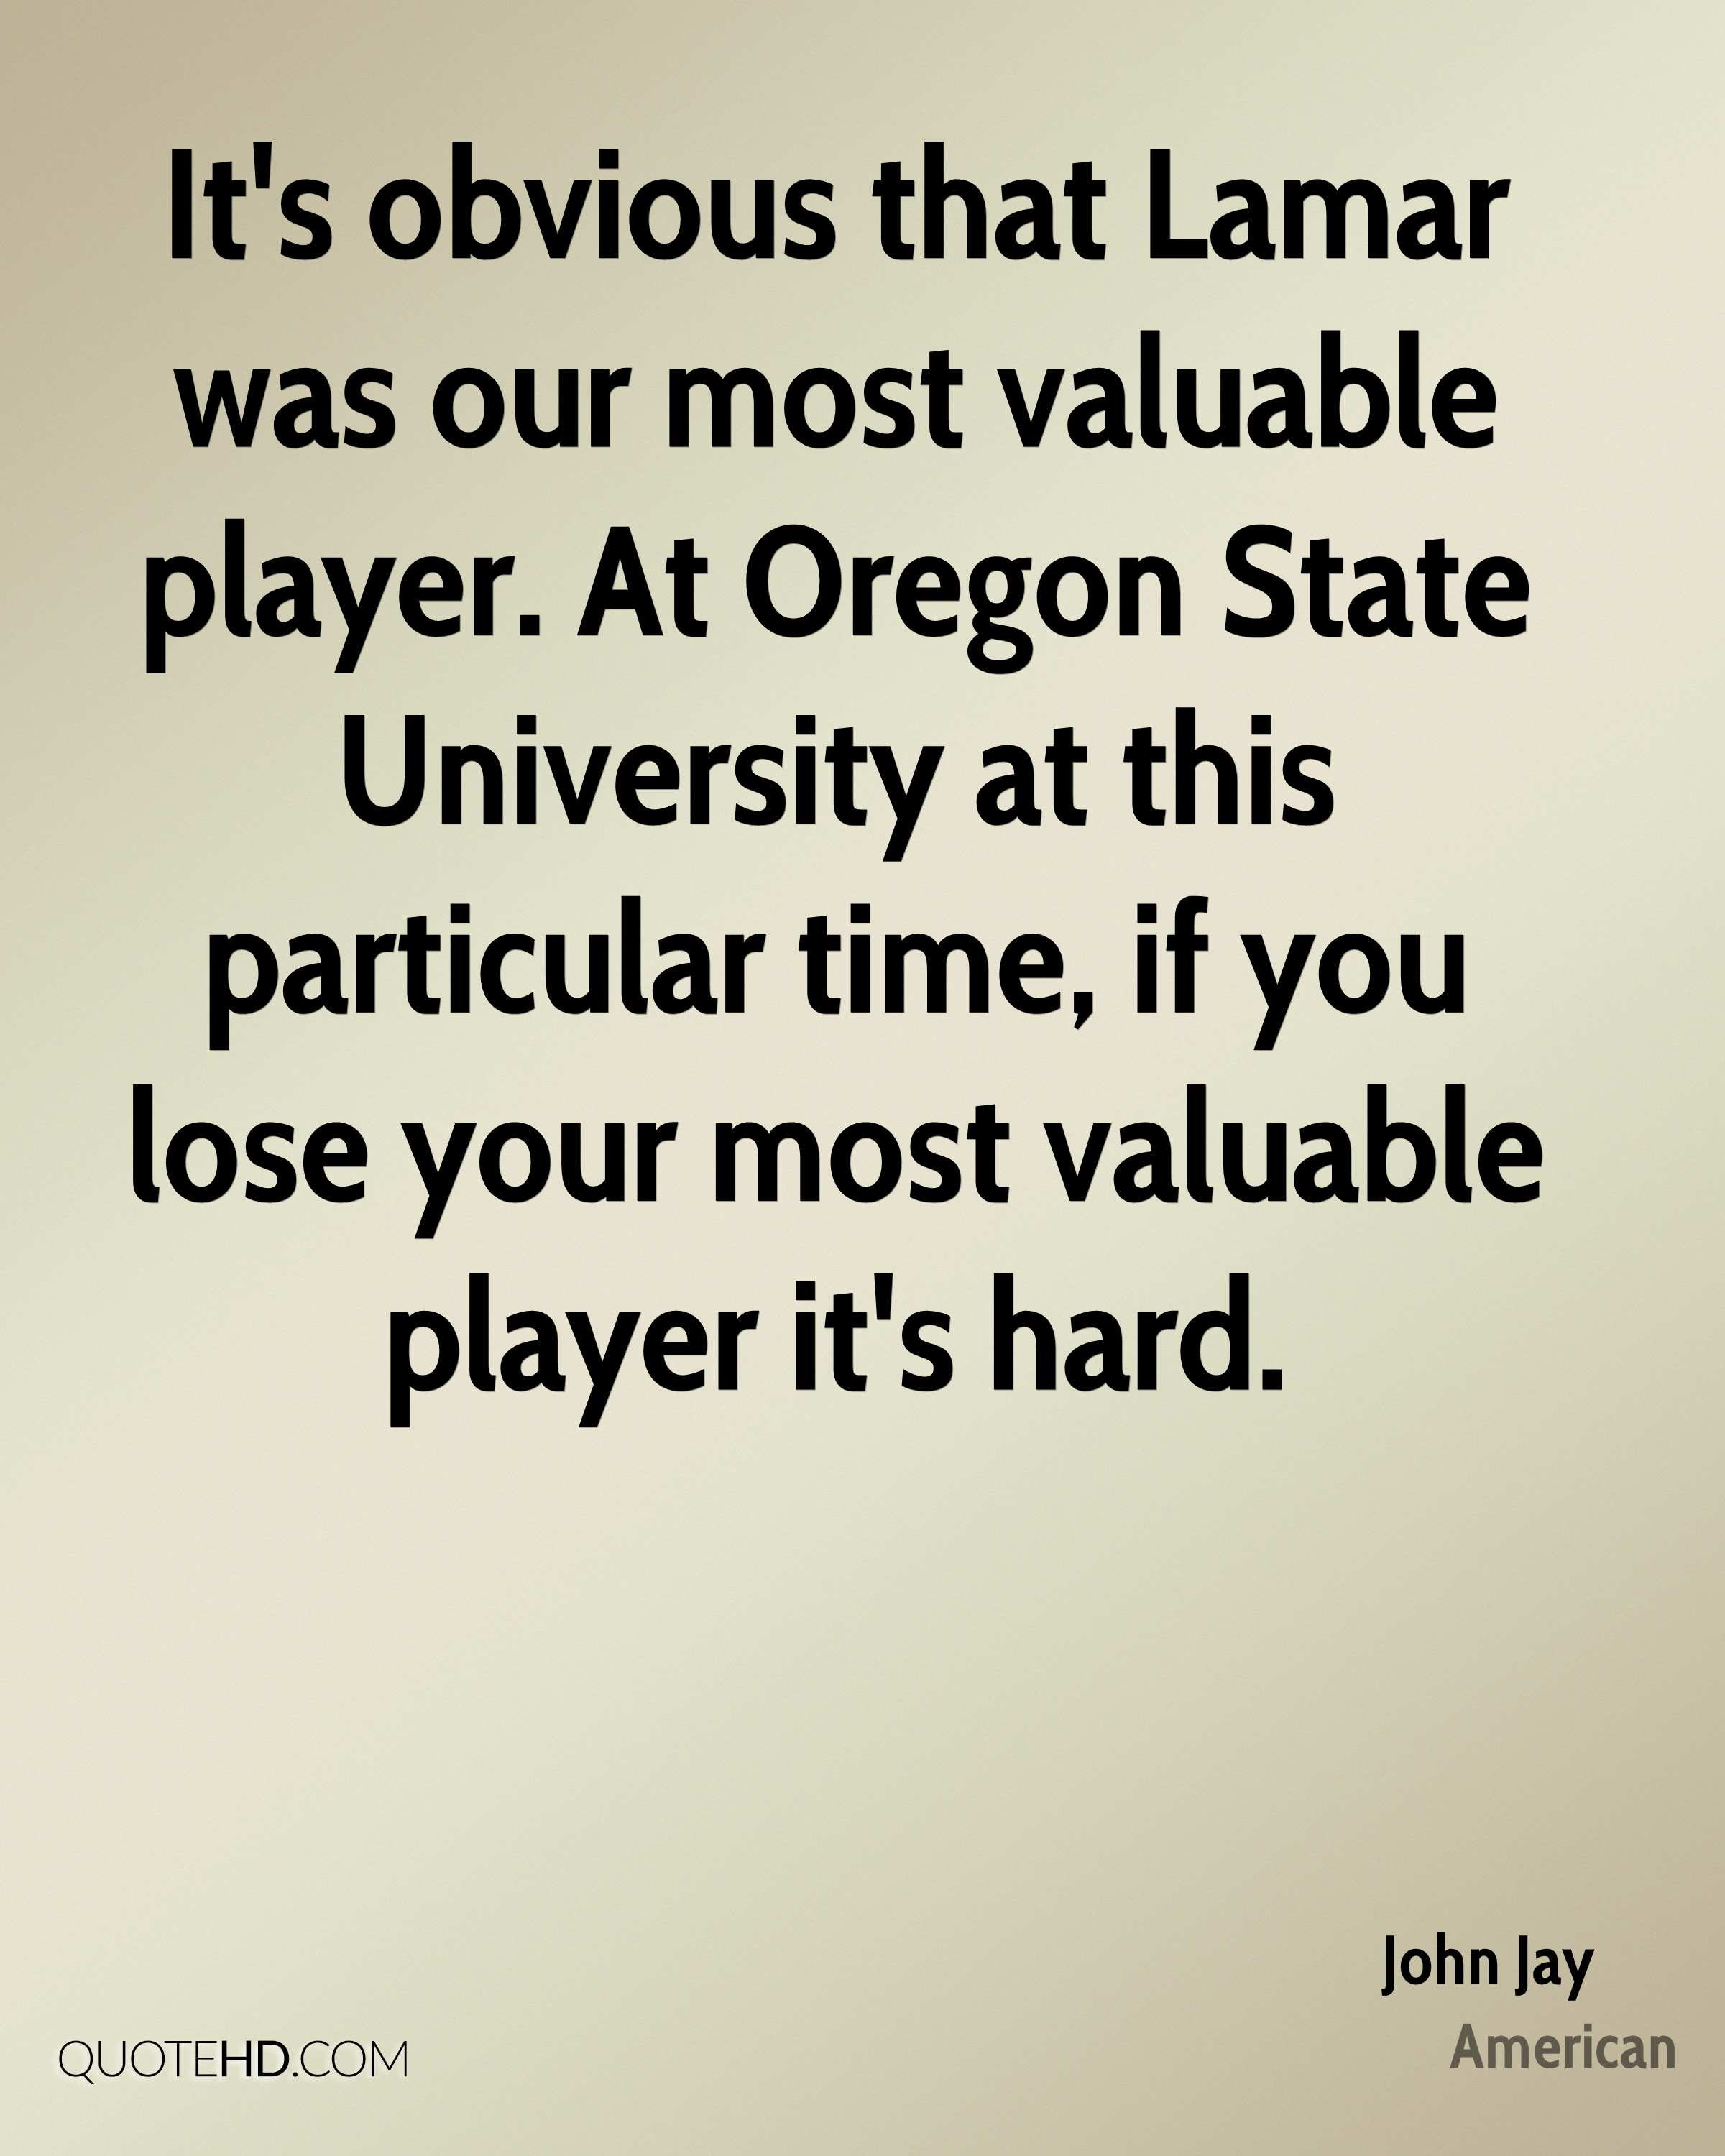 It's obvious that Lamar was our most valuable player. At Oregon State University at this particular time, if you lose your most valuable player it's hard.